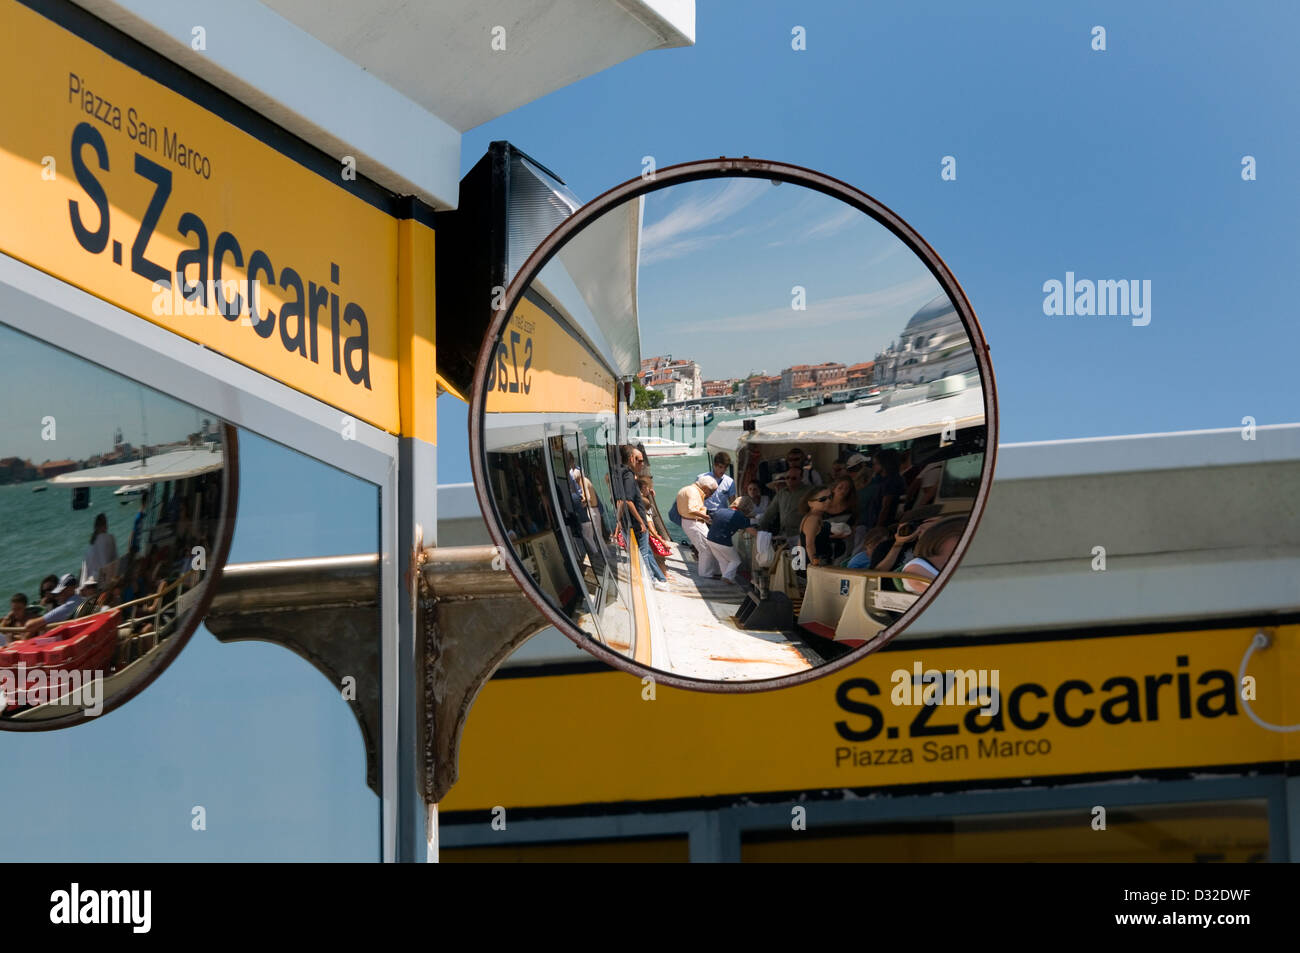 A vaporetto (water-bus) at the San Zaccaria stop, Castello, Venice, Italy. - Stock Image